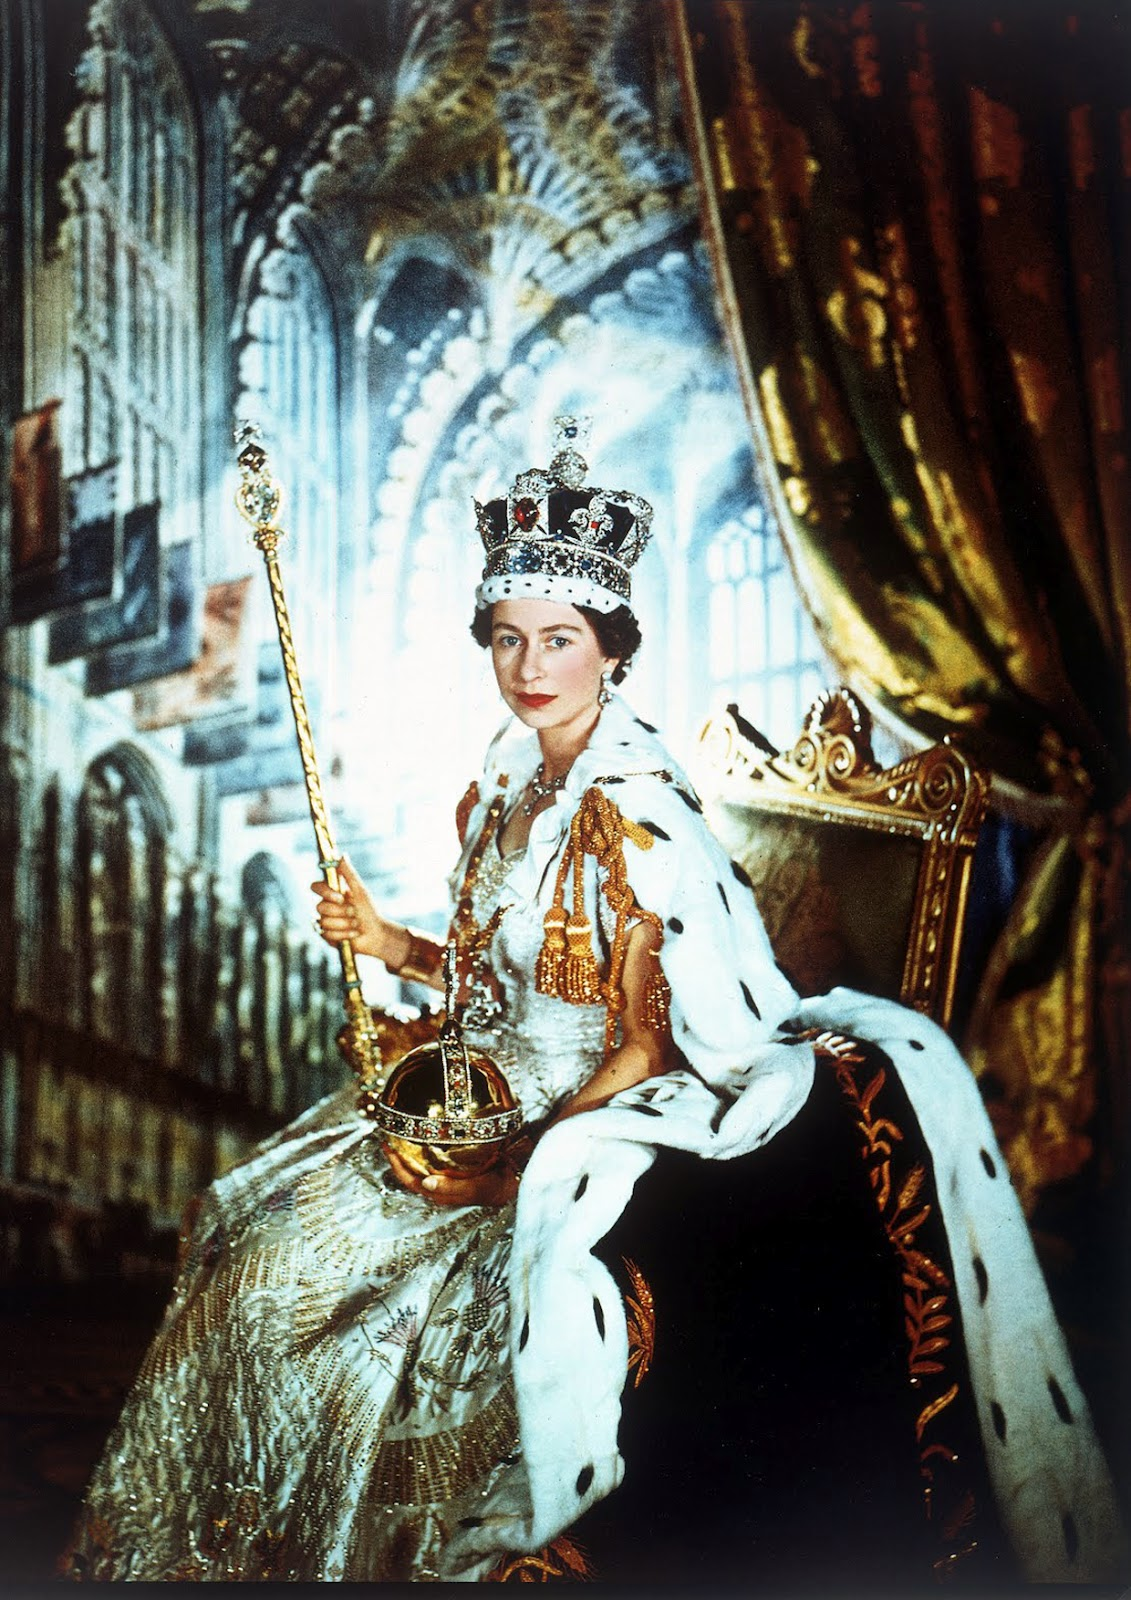 1911 Queen Mary coronation portrait by Sir William